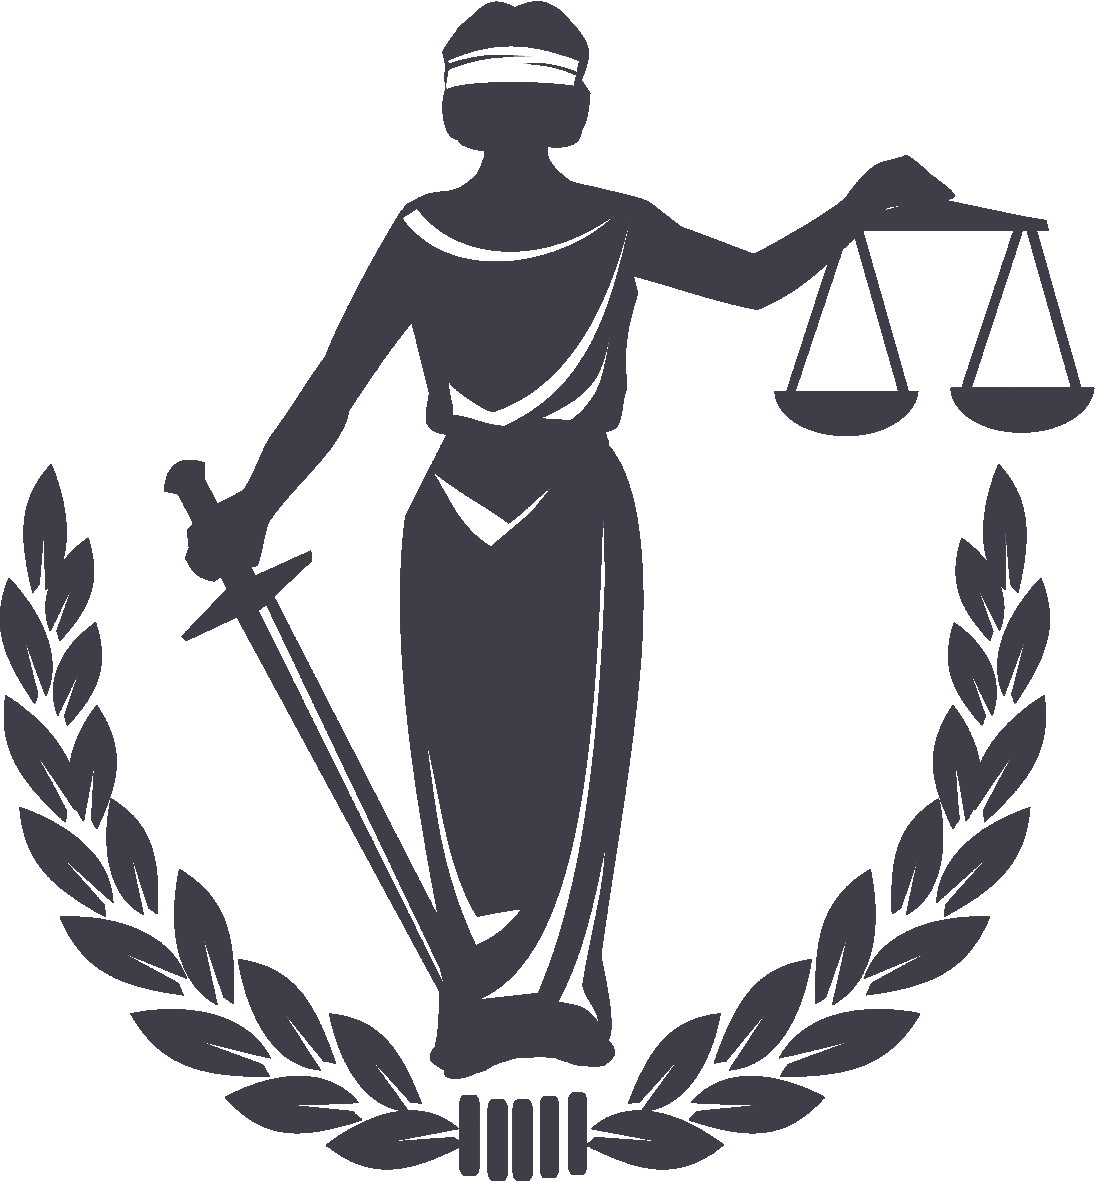 Laws clipart federalism, Laws federalism Transparent FREE.